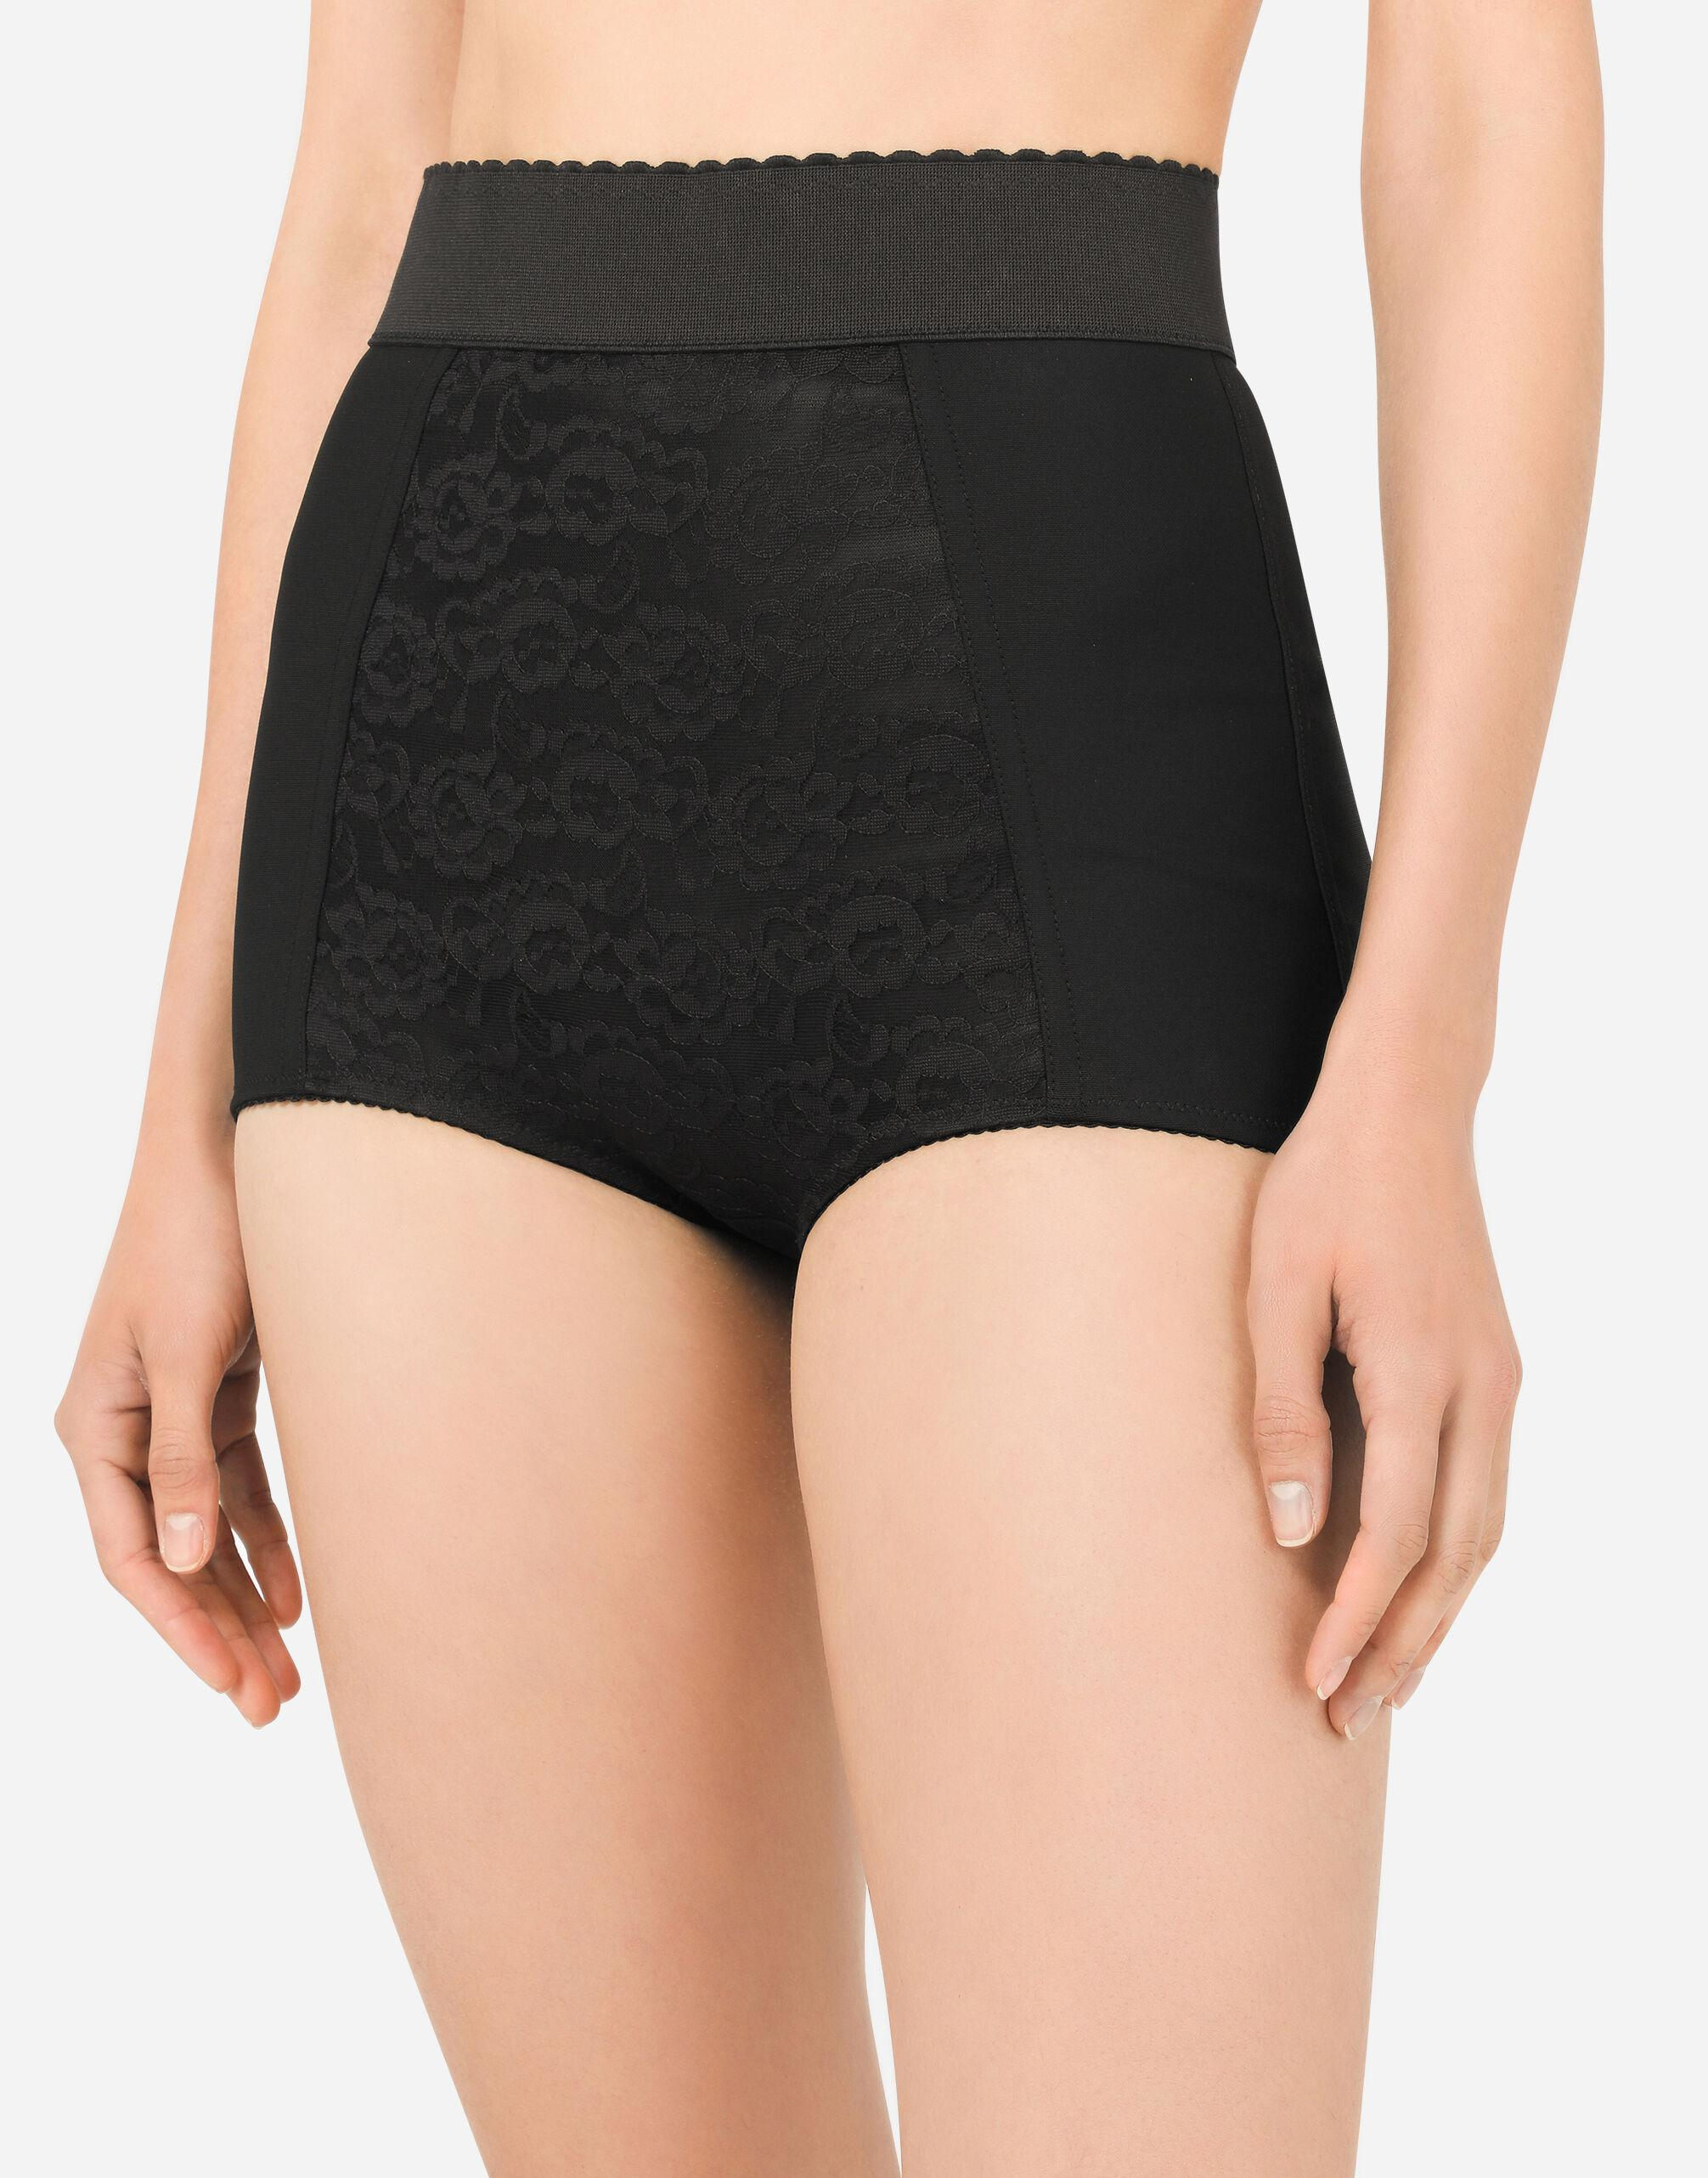 High-waisted shaper panties in jacquard and satin 2